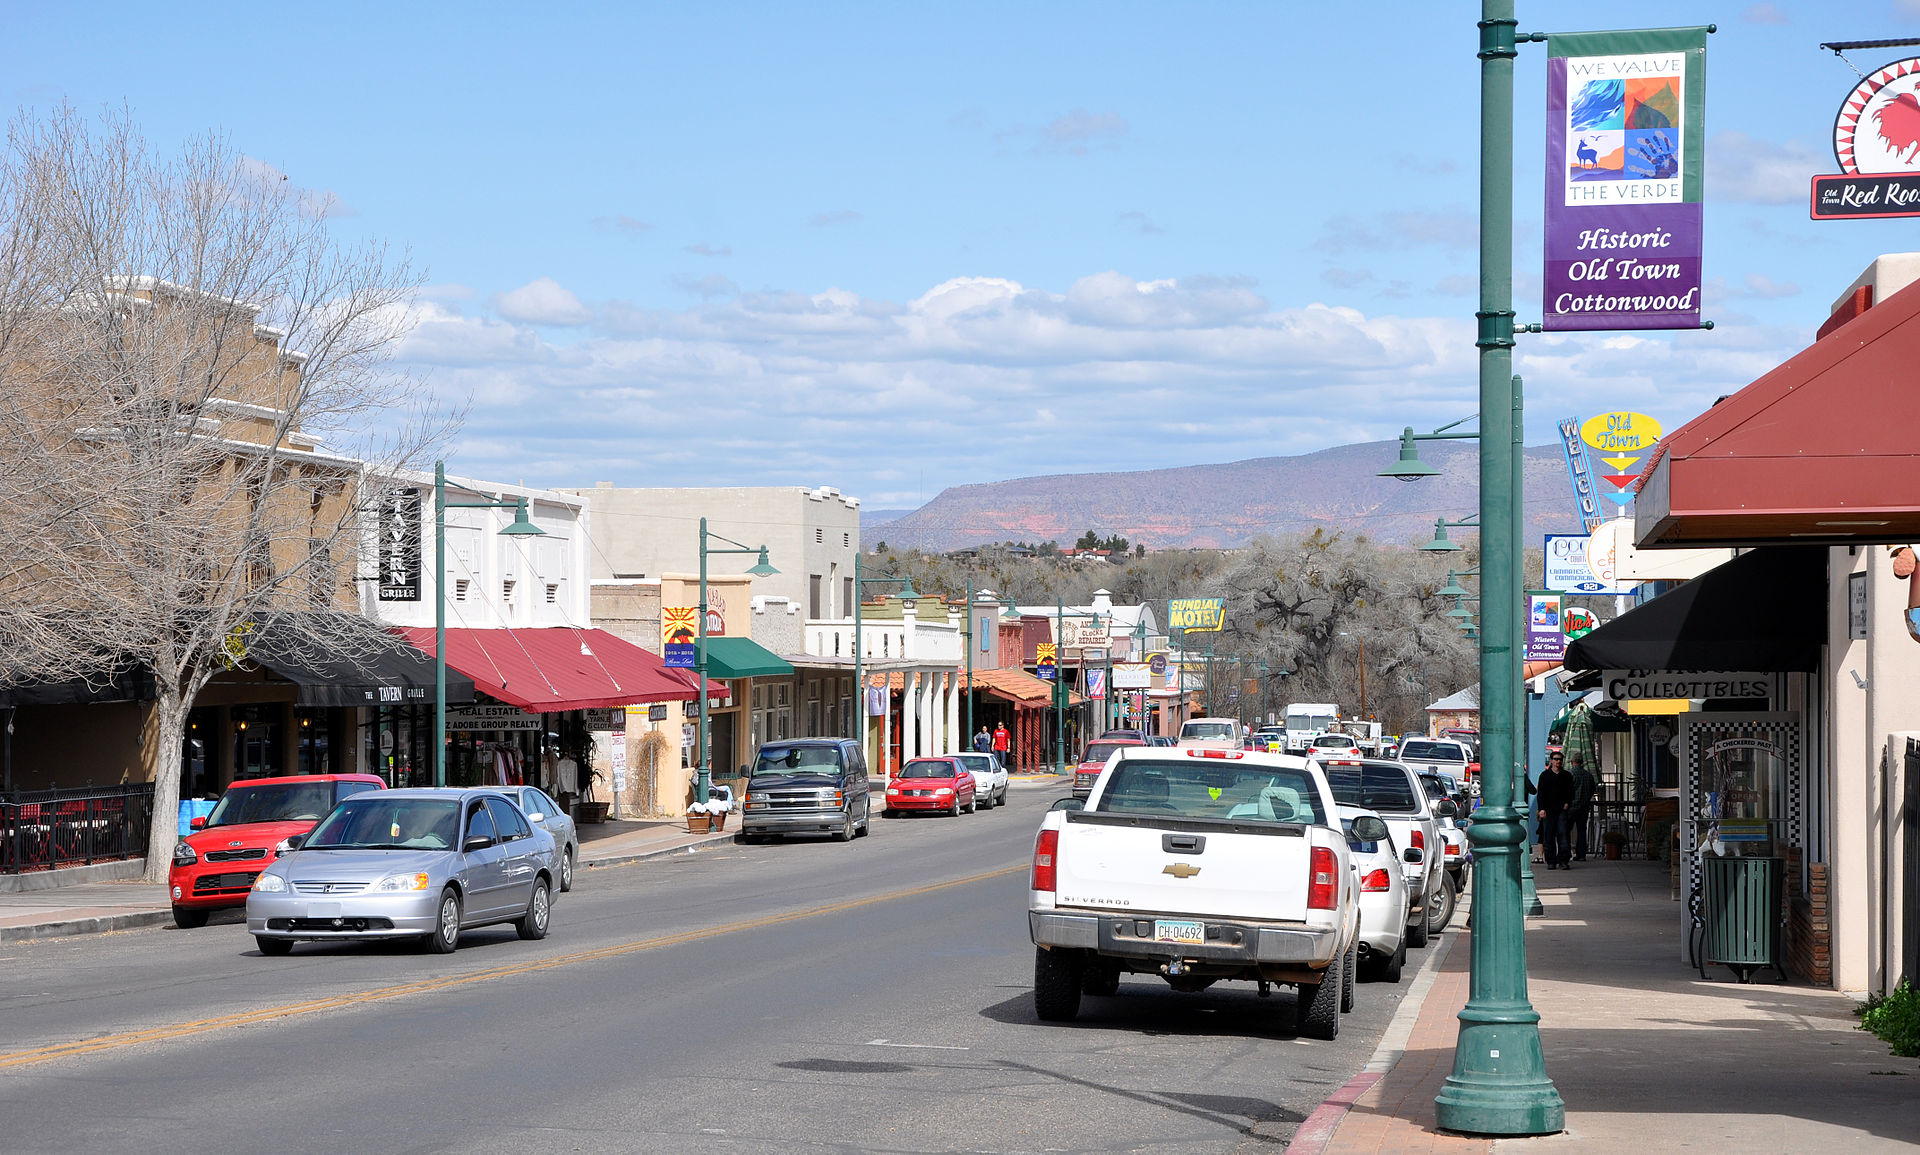 Commercial_Historic_District_(Cottonwood,_Arizona)